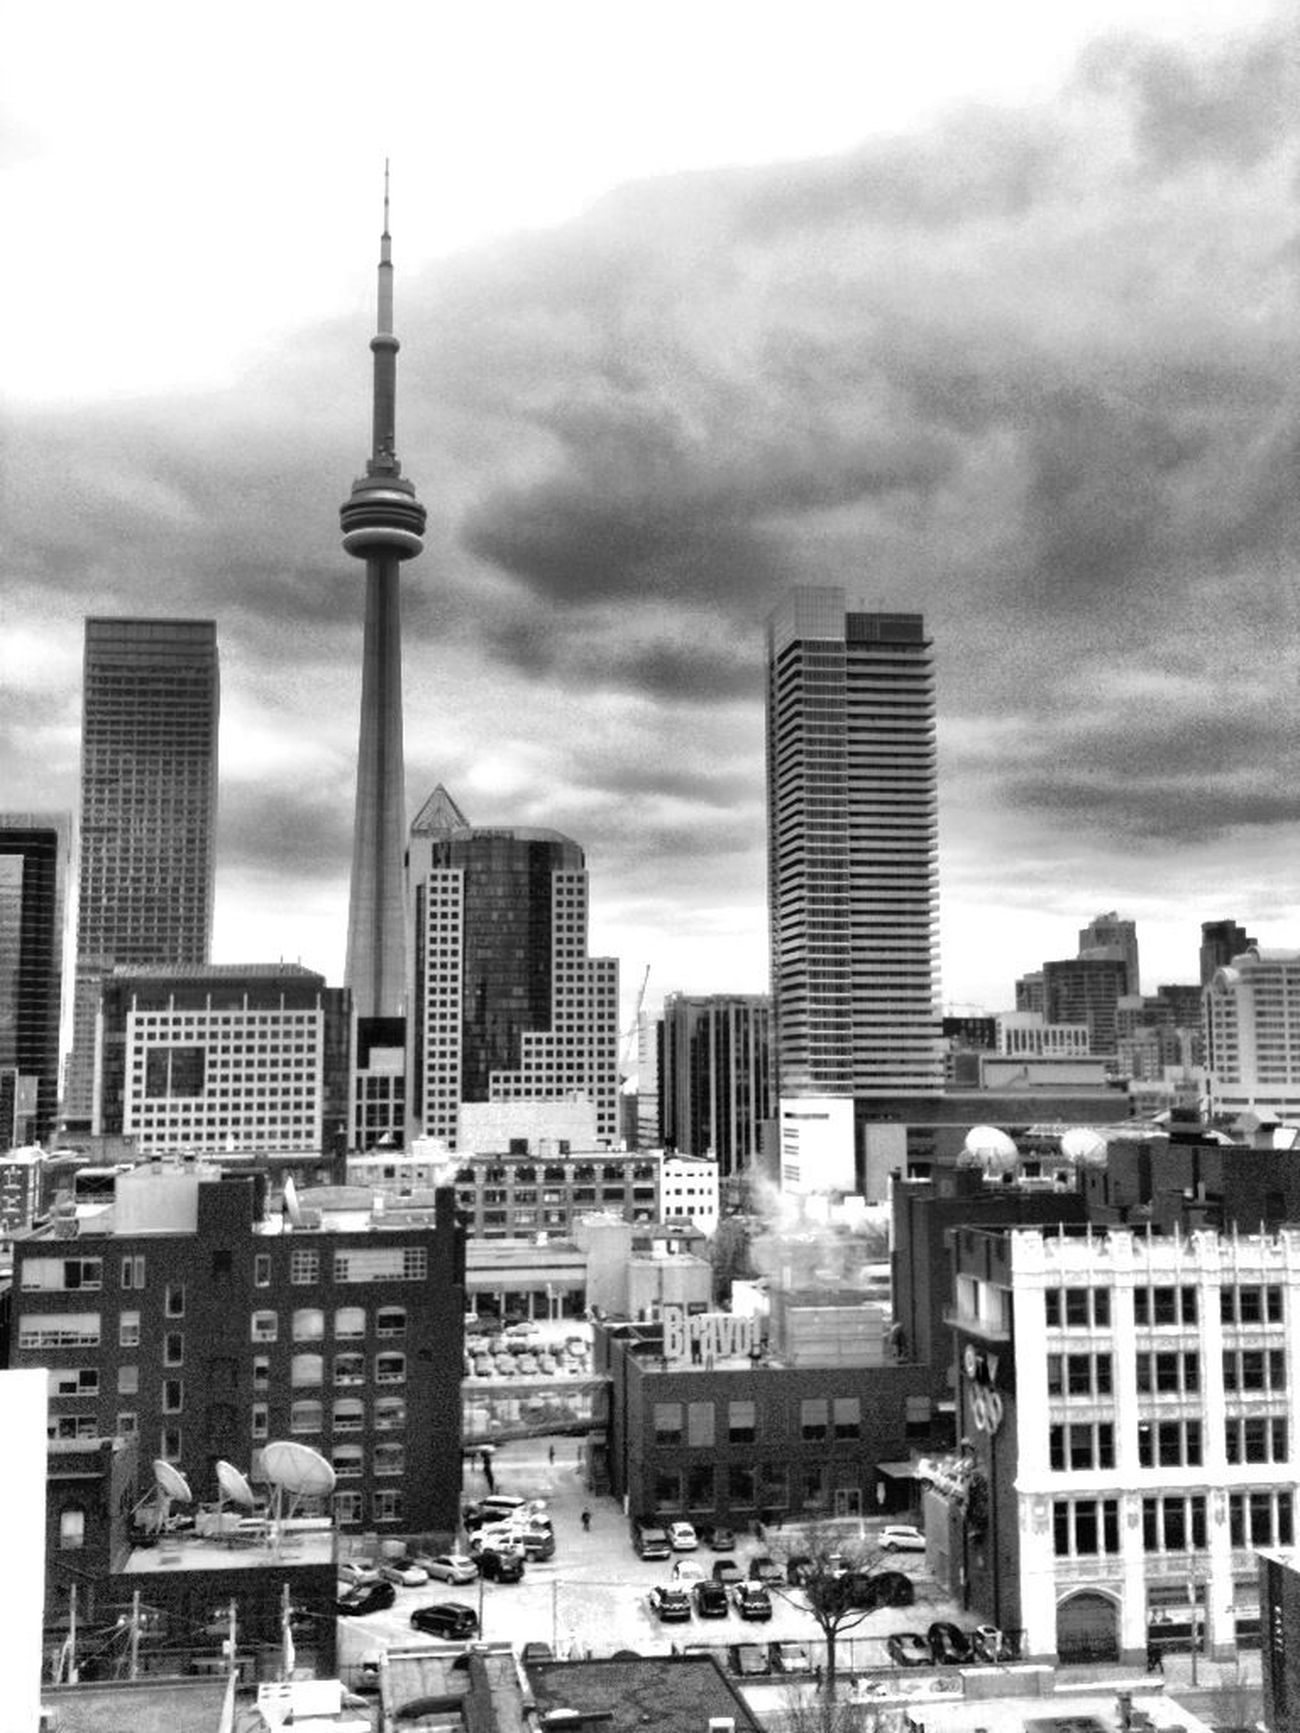 #malditoiphone #iphoneography #Toronto #downtown